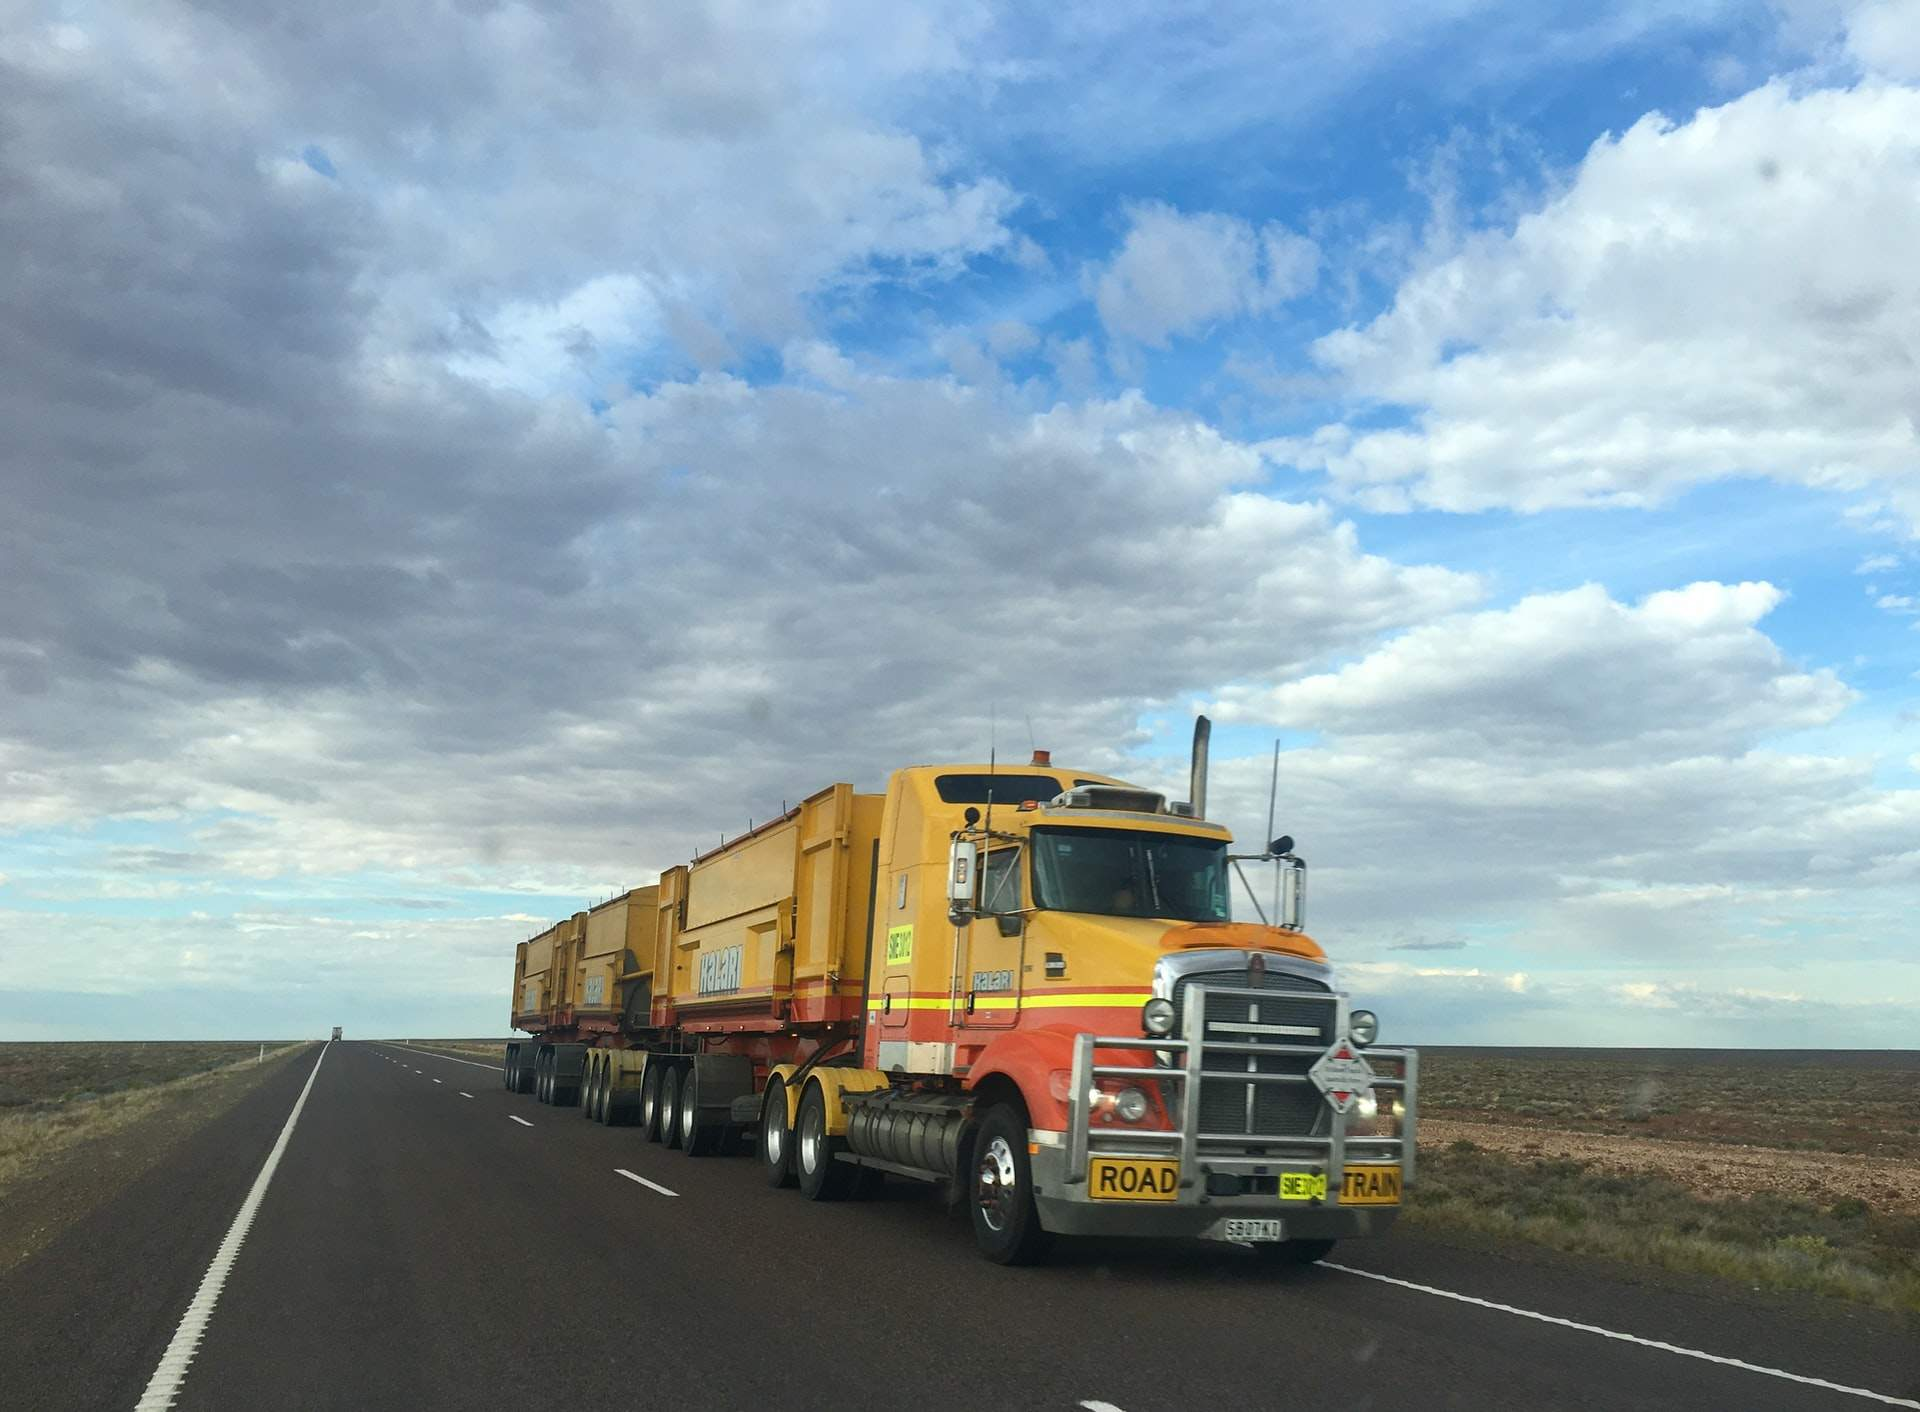 How To Reduce Risk While Driving Trucks